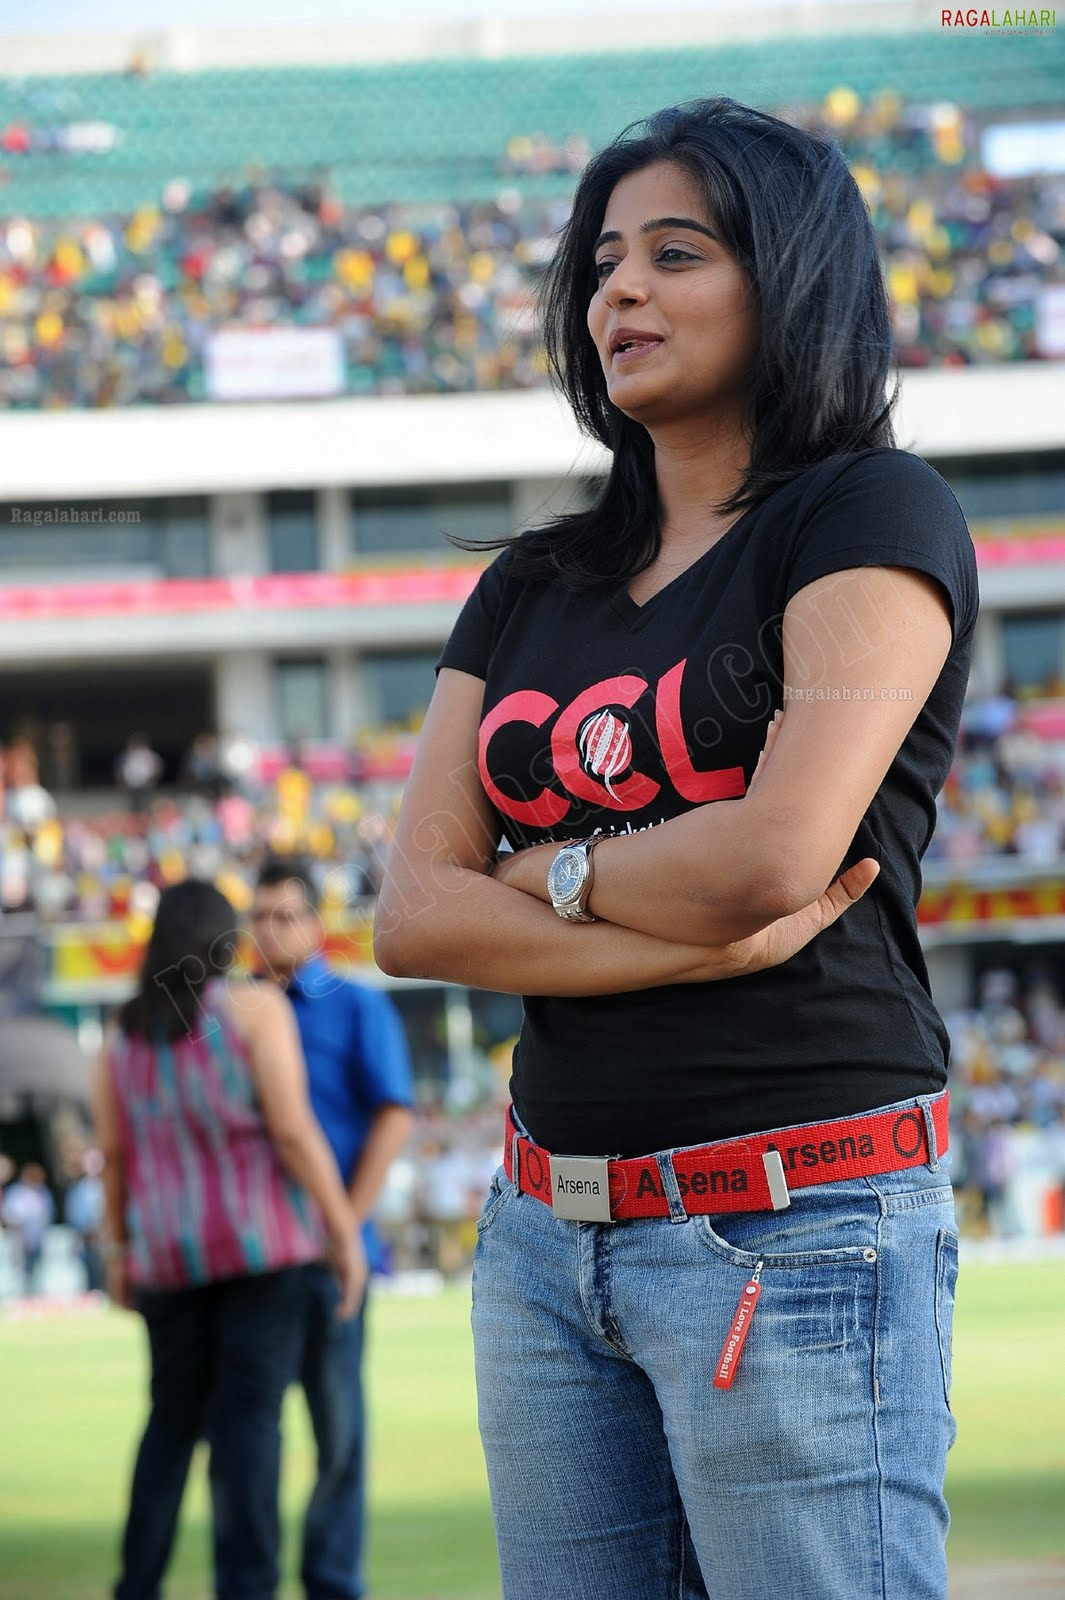 http://1.bp.blogspot.com/-niHitbmH0ms/TfoL9xKN_wI/AAAAAAAAITA/OUt4QsVwF38/s1600/priyamani-high-resolution-celebrity-cricket-league10-0012_indian%2Bmasala_01indianmasala.blogspot.com.jpg